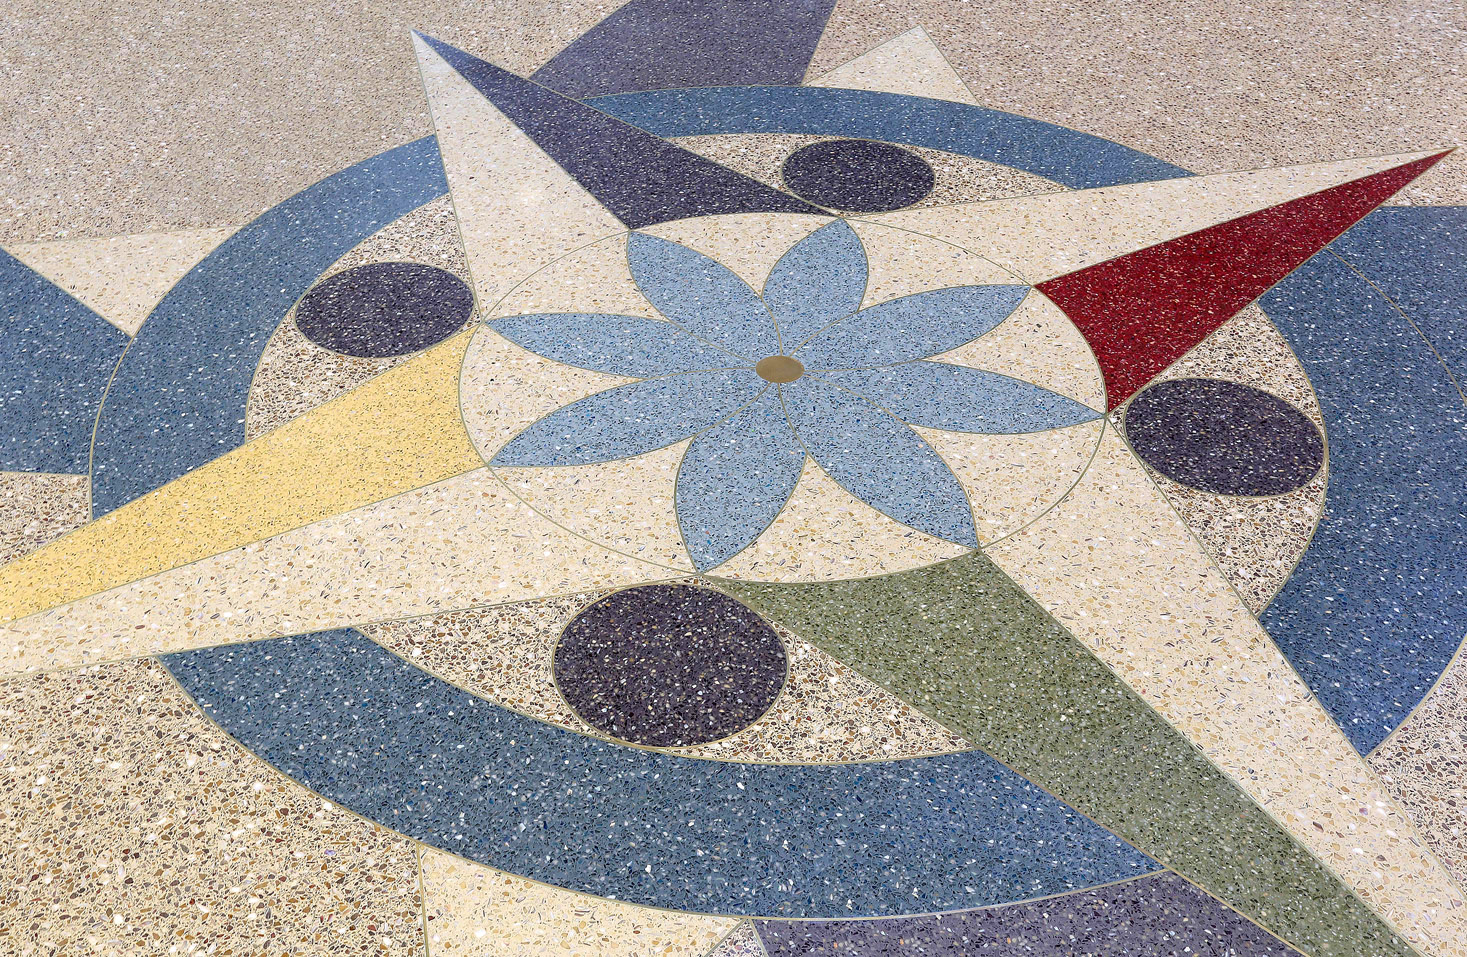 Selling Terrazzo to Clients